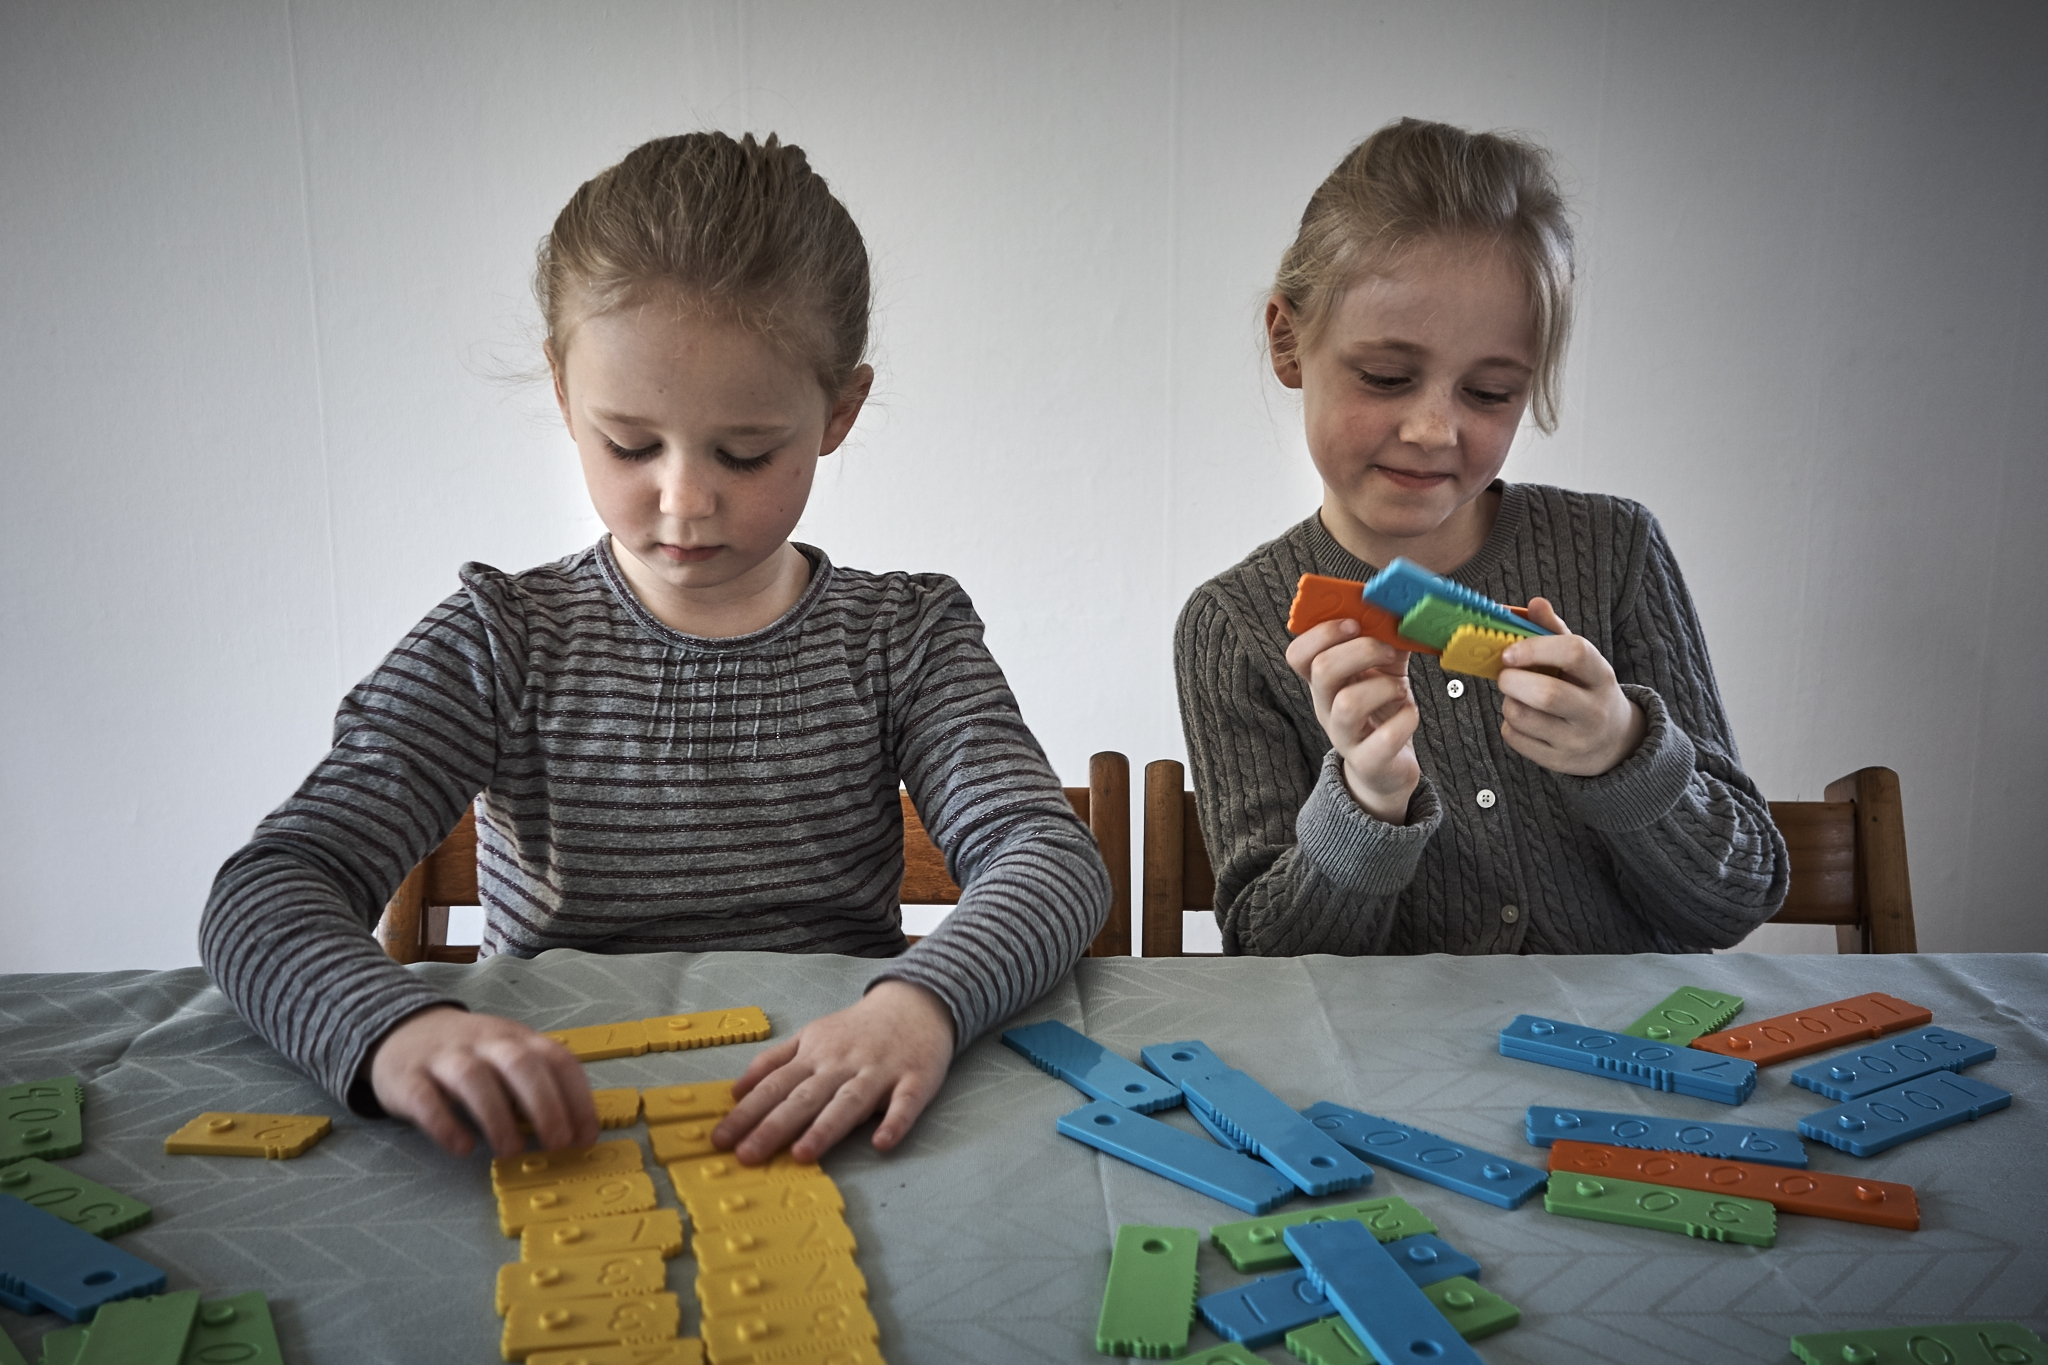 The newmero bricks are educational toys for girls.